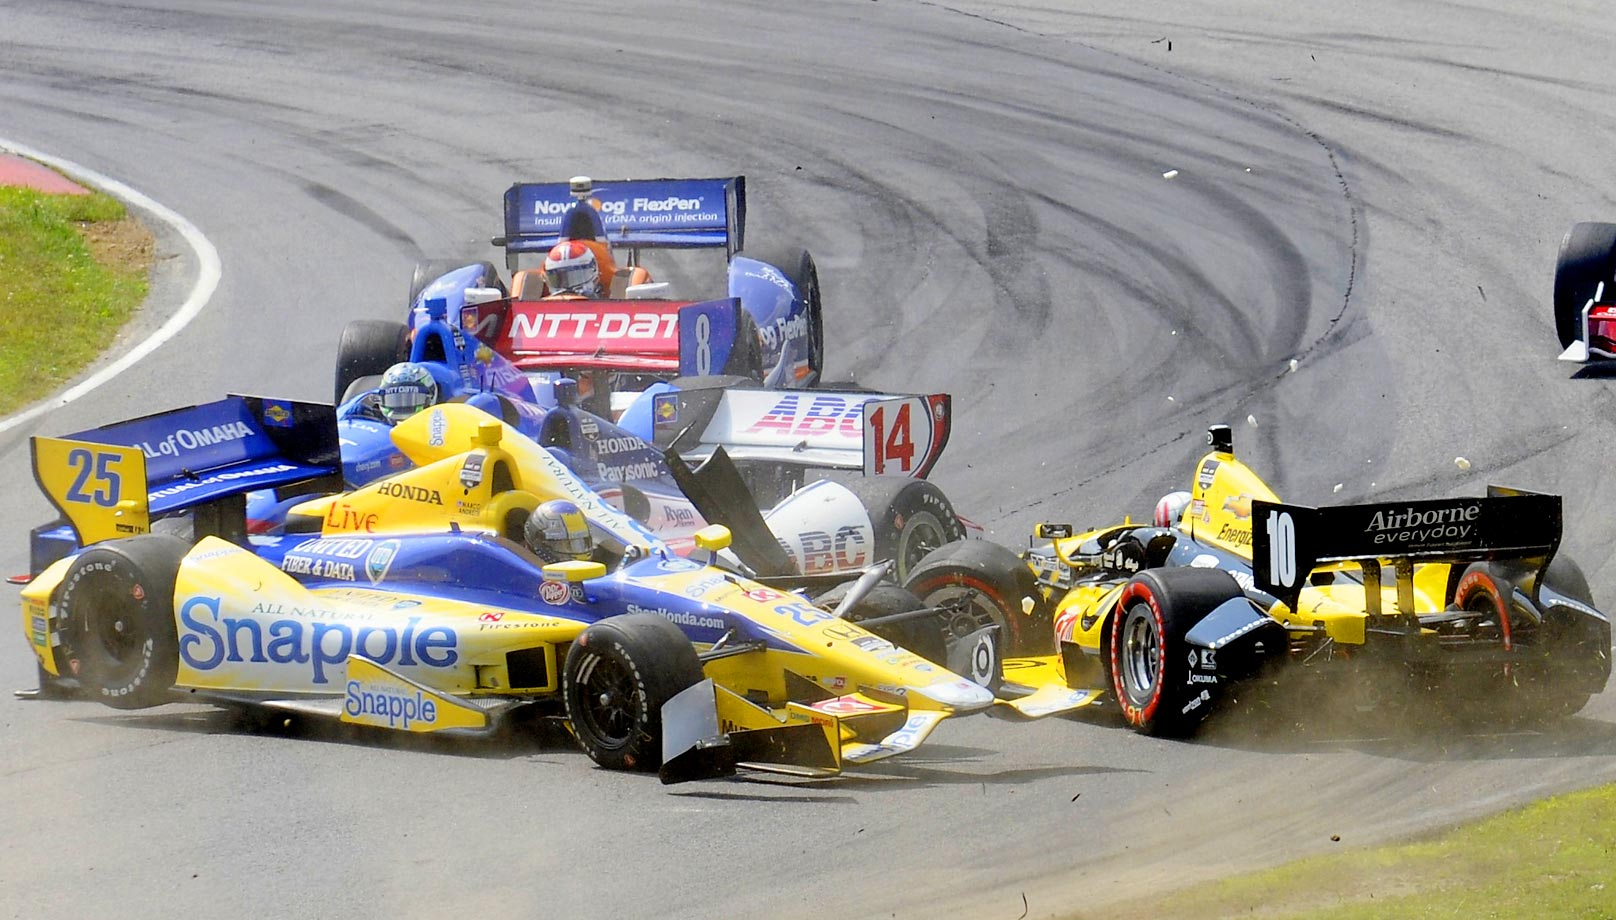 Marco Andretti (25) collides with Tony Kanaan (10), of Brazil, in a first lap crash during the IndyCar Honda Indy 200 auto racing at Mid-Ohio Sports Car Course in Lexington, Ohio Sunday, Aug. 3, 2014, while Takuma Sato (14), of Japan, and Ryan Briscoe (8), of Australia, try to avoid the crash.